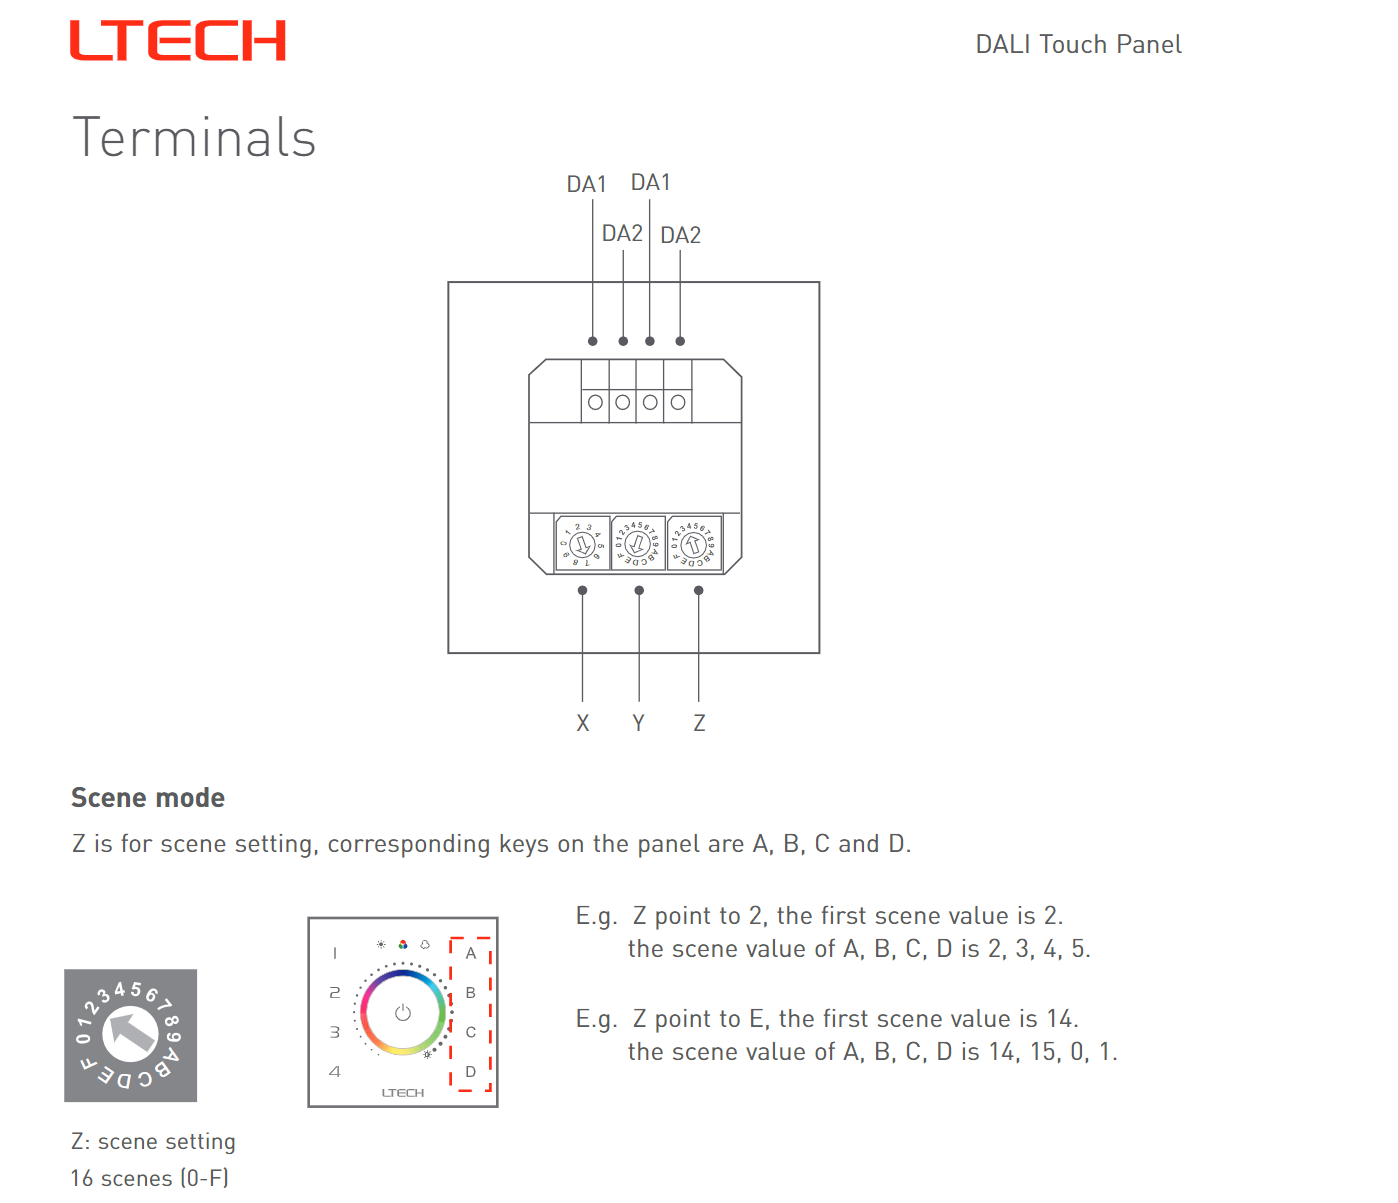 Ltech_EDT2_DALI_CT_Touch_Panel_Master_Led_Controller_9